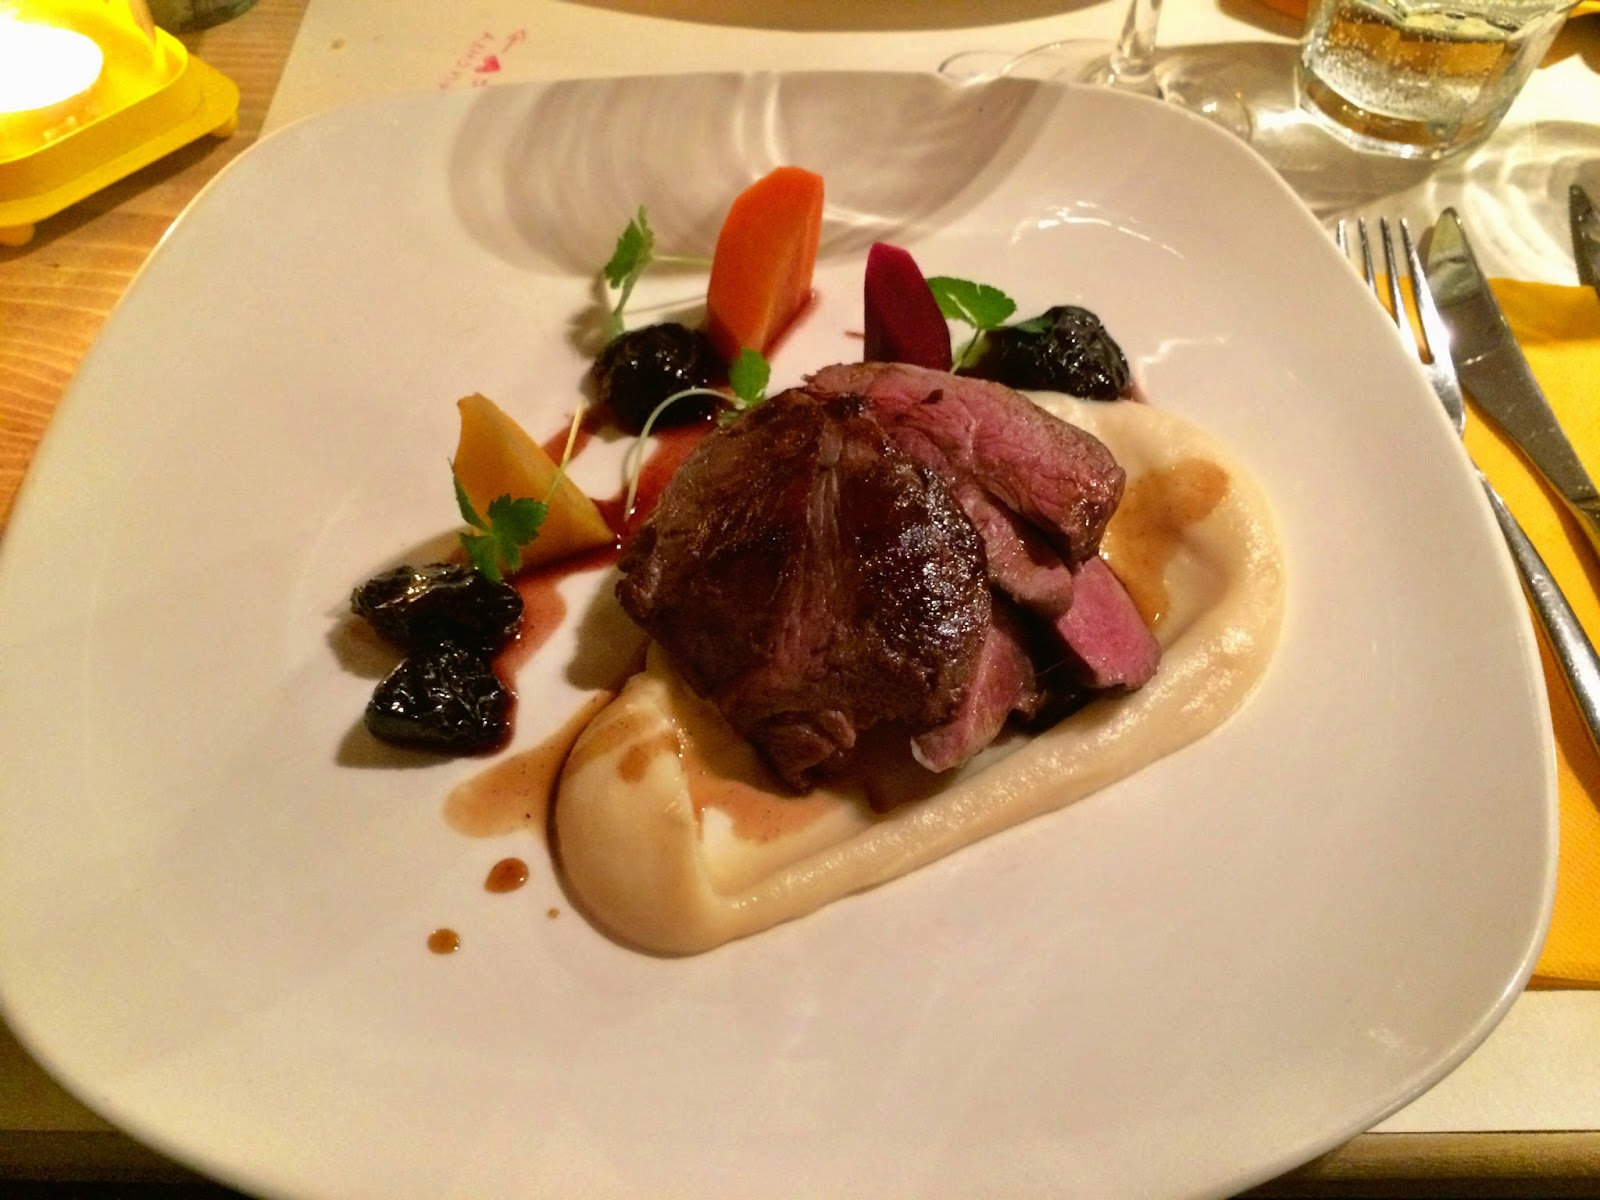 Melt in the mouth lamb and parsnip puree - Zeller Bistro, Budapest